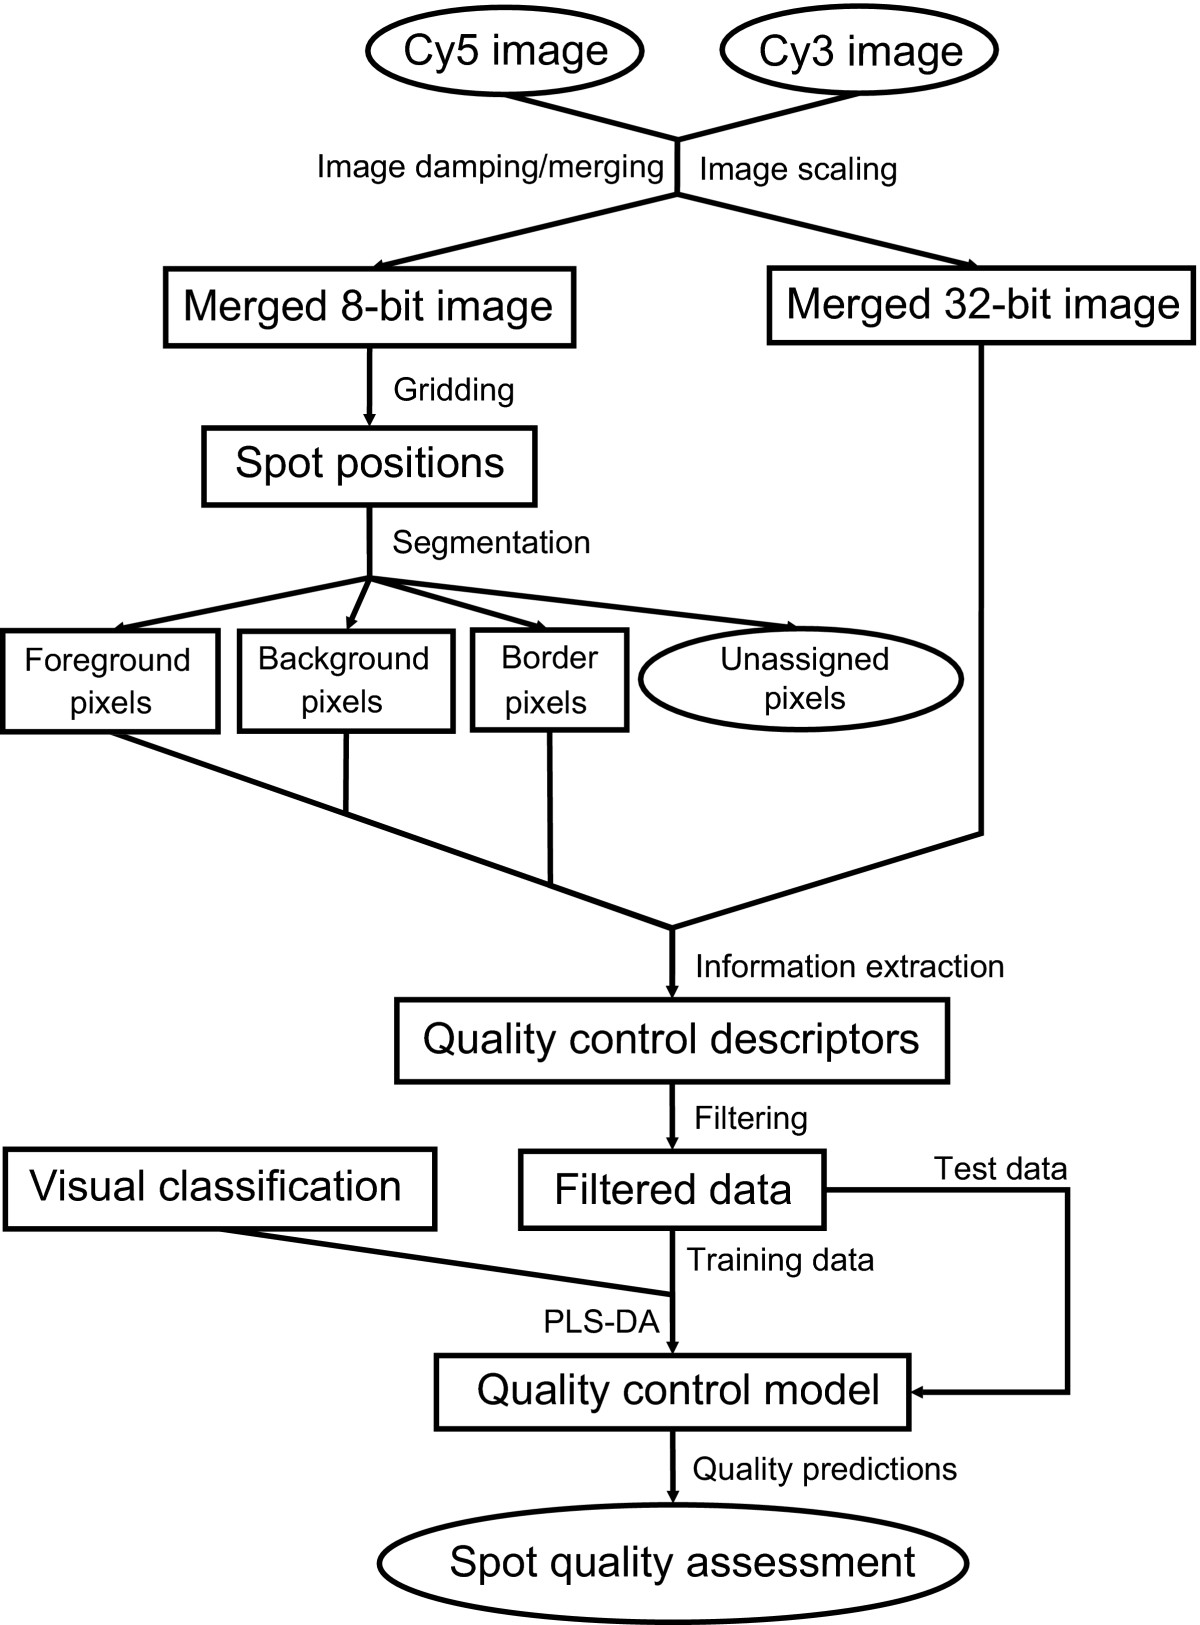 https://static-content.springer.com/image/art%3A10.1186%2F1471-2105-6-250/MediaObjects/12859_2005_Article_575_Fig1_HTML.jpg